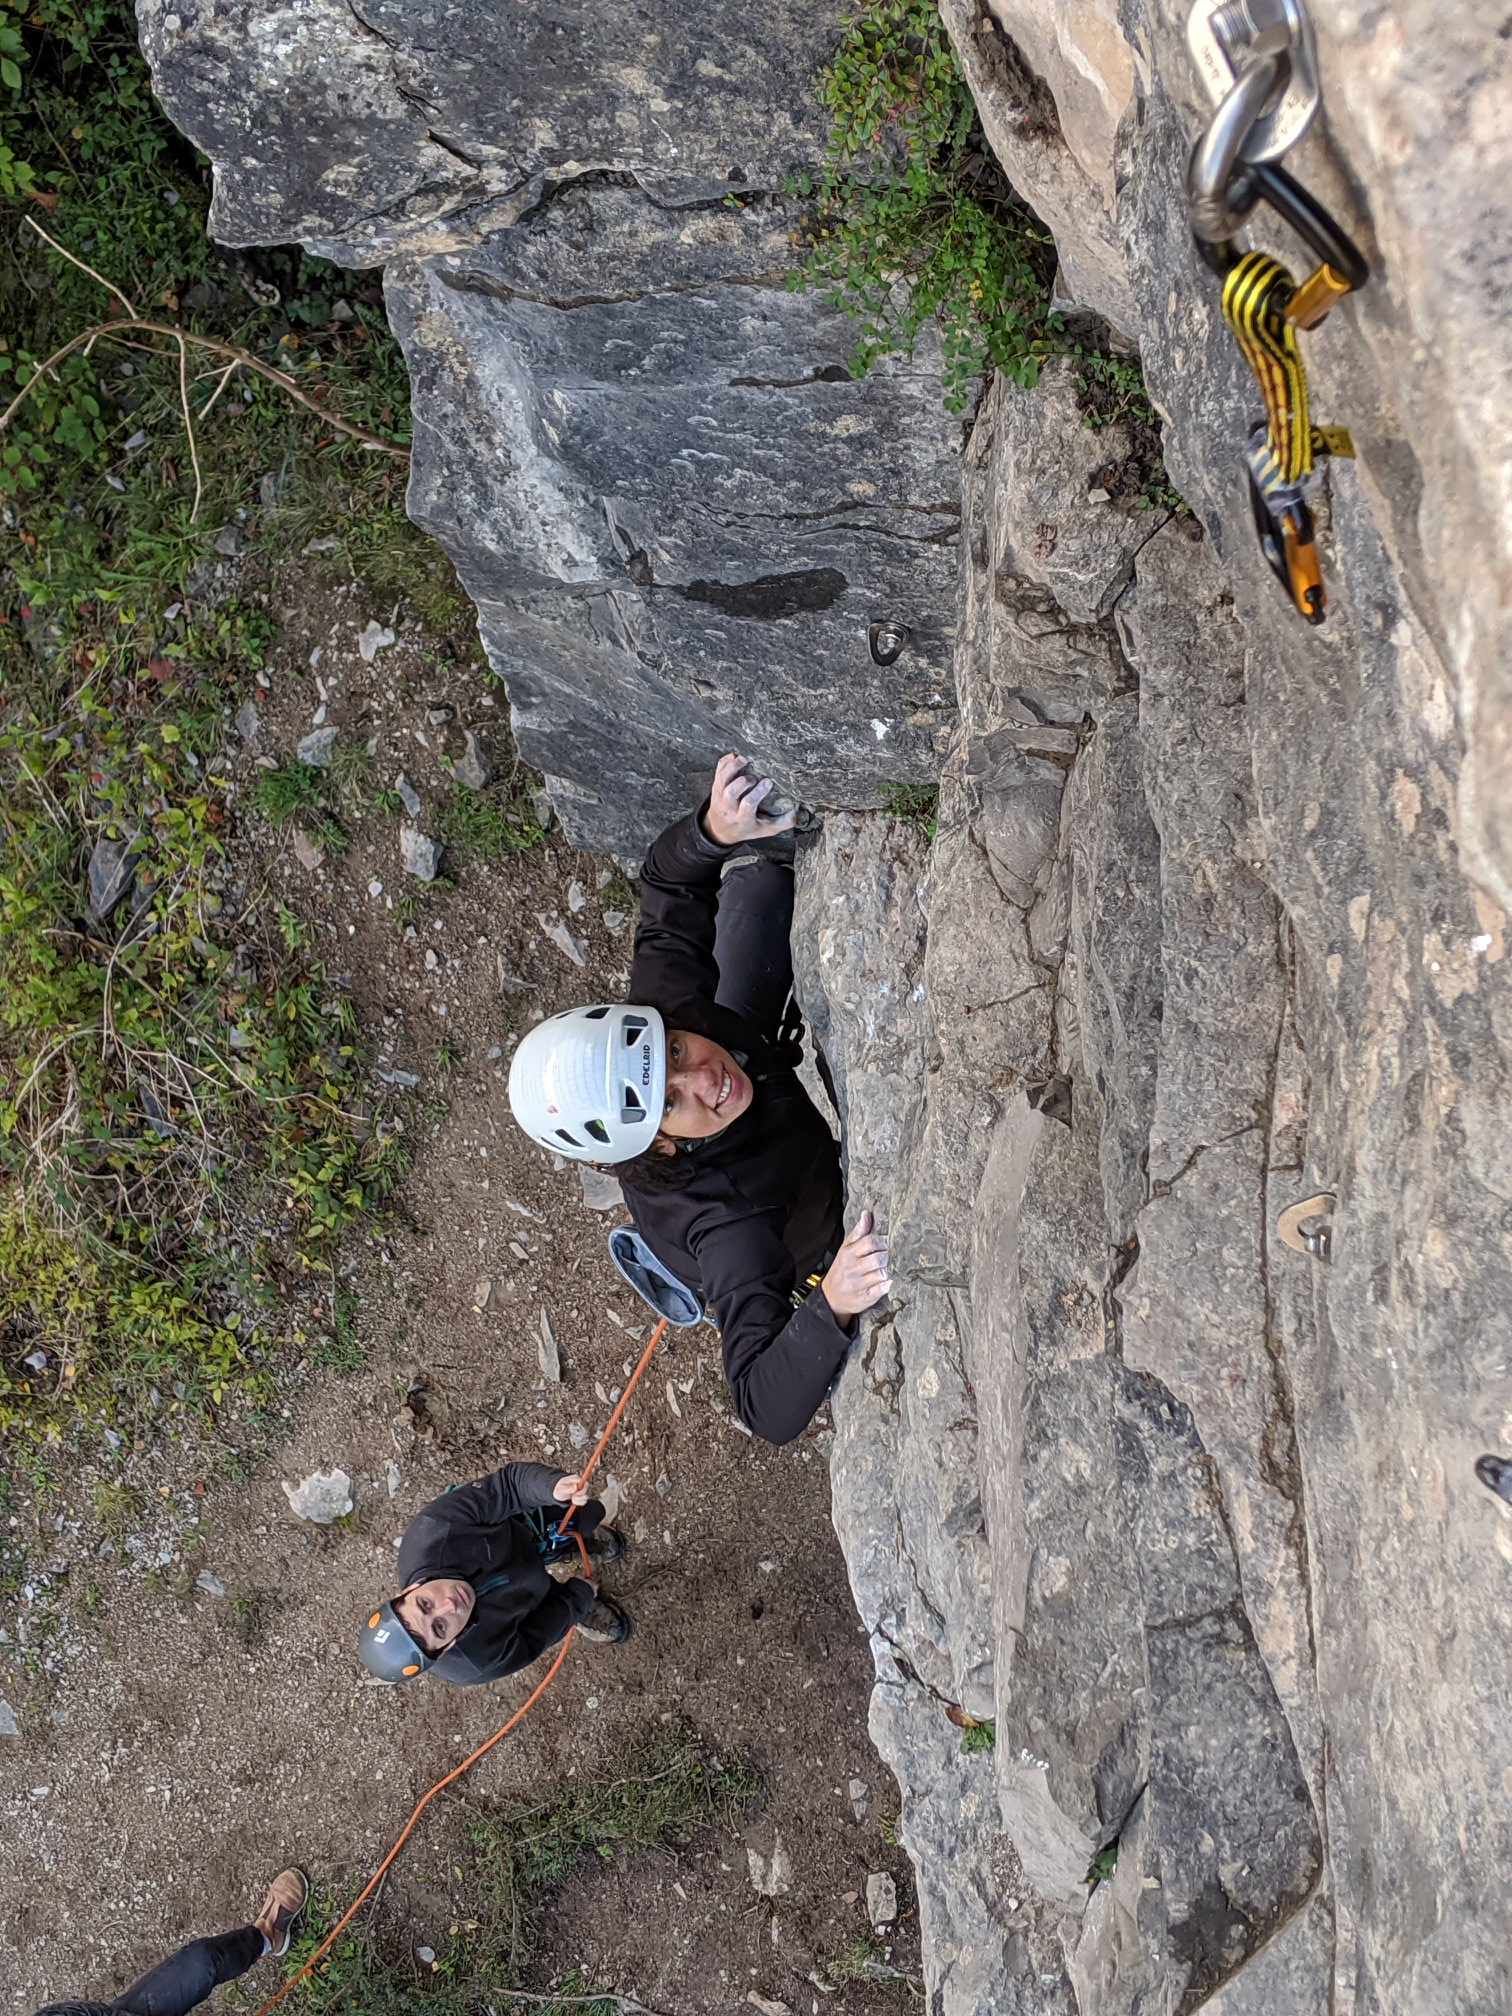 Learn to lead rock climbing courses